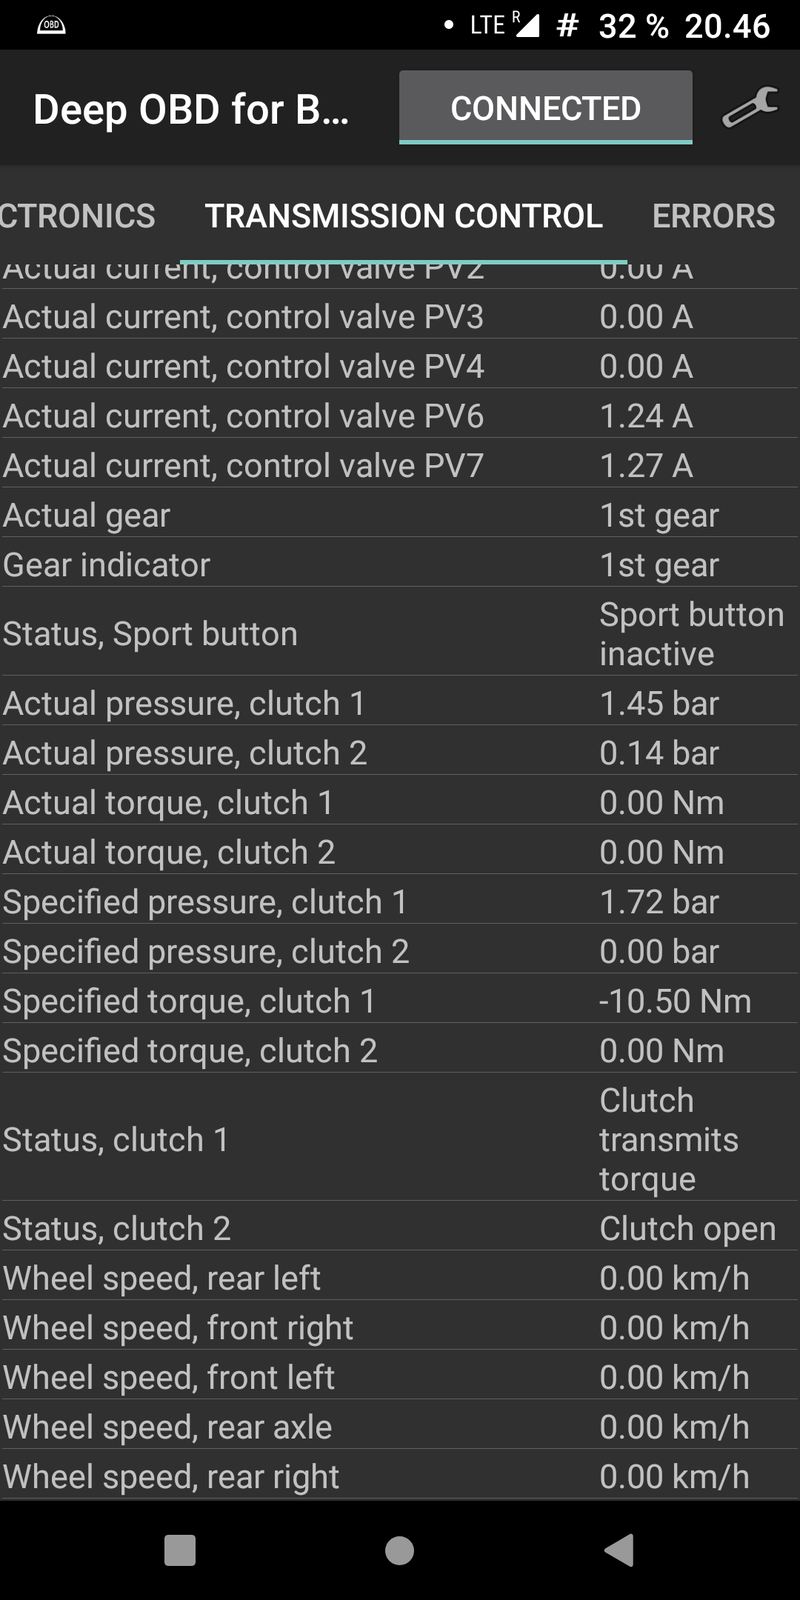 Screenshot_20200218-204647_Deep_OBD_for_BMW_and_VAG.png